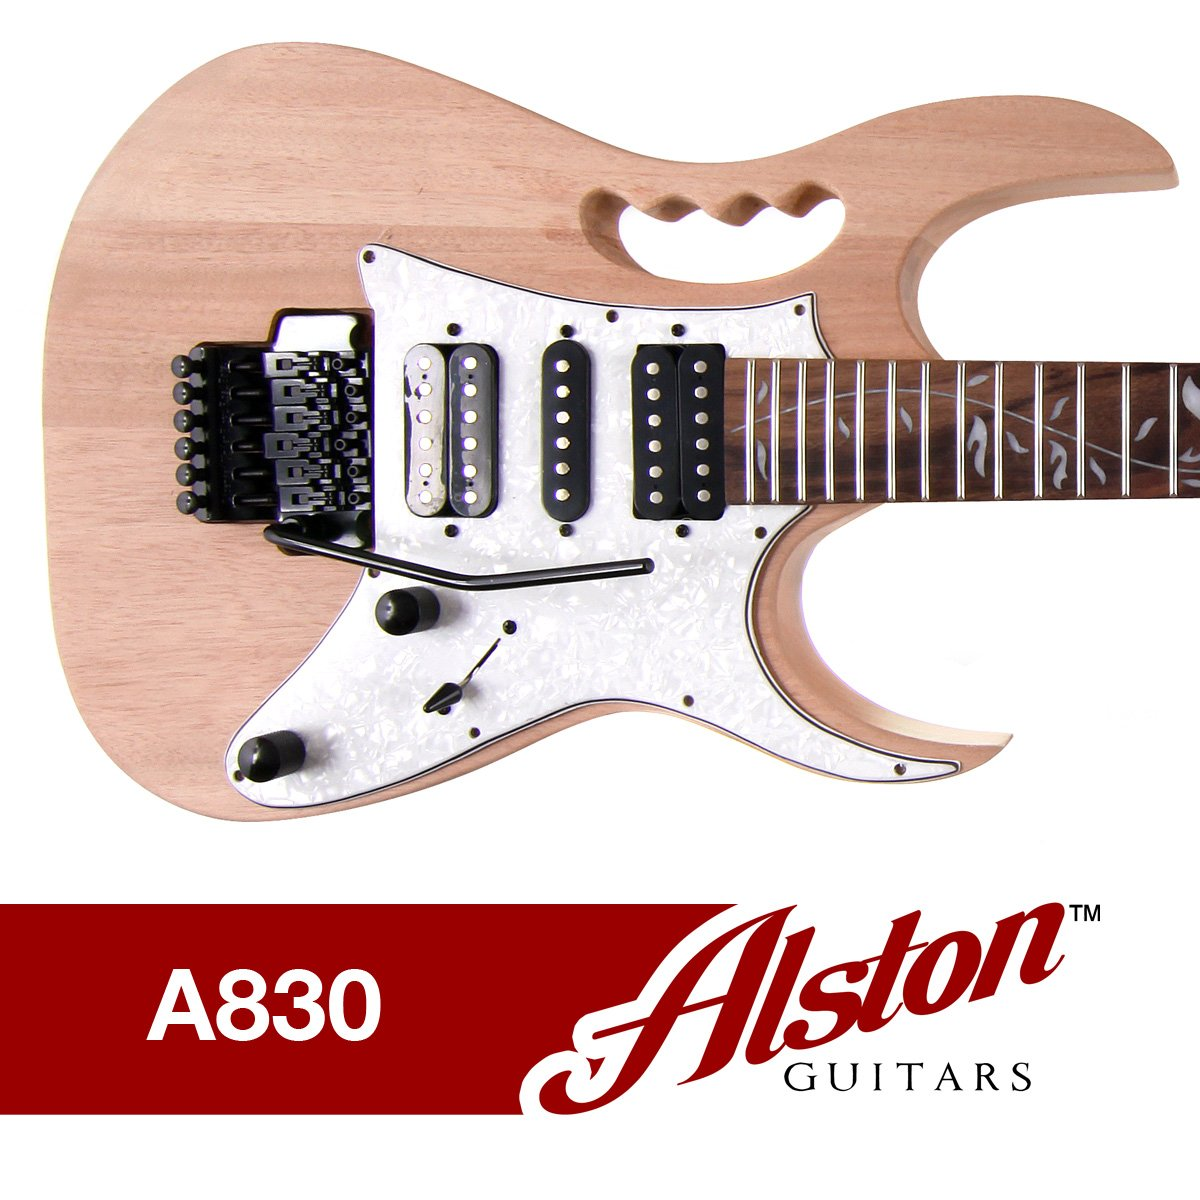 Amazon.com: Alston Guitars - DIY Electric Guitar Kit | Bolt-On | Solid  Mahogany Body | Monkey Grip: Musical Instruments